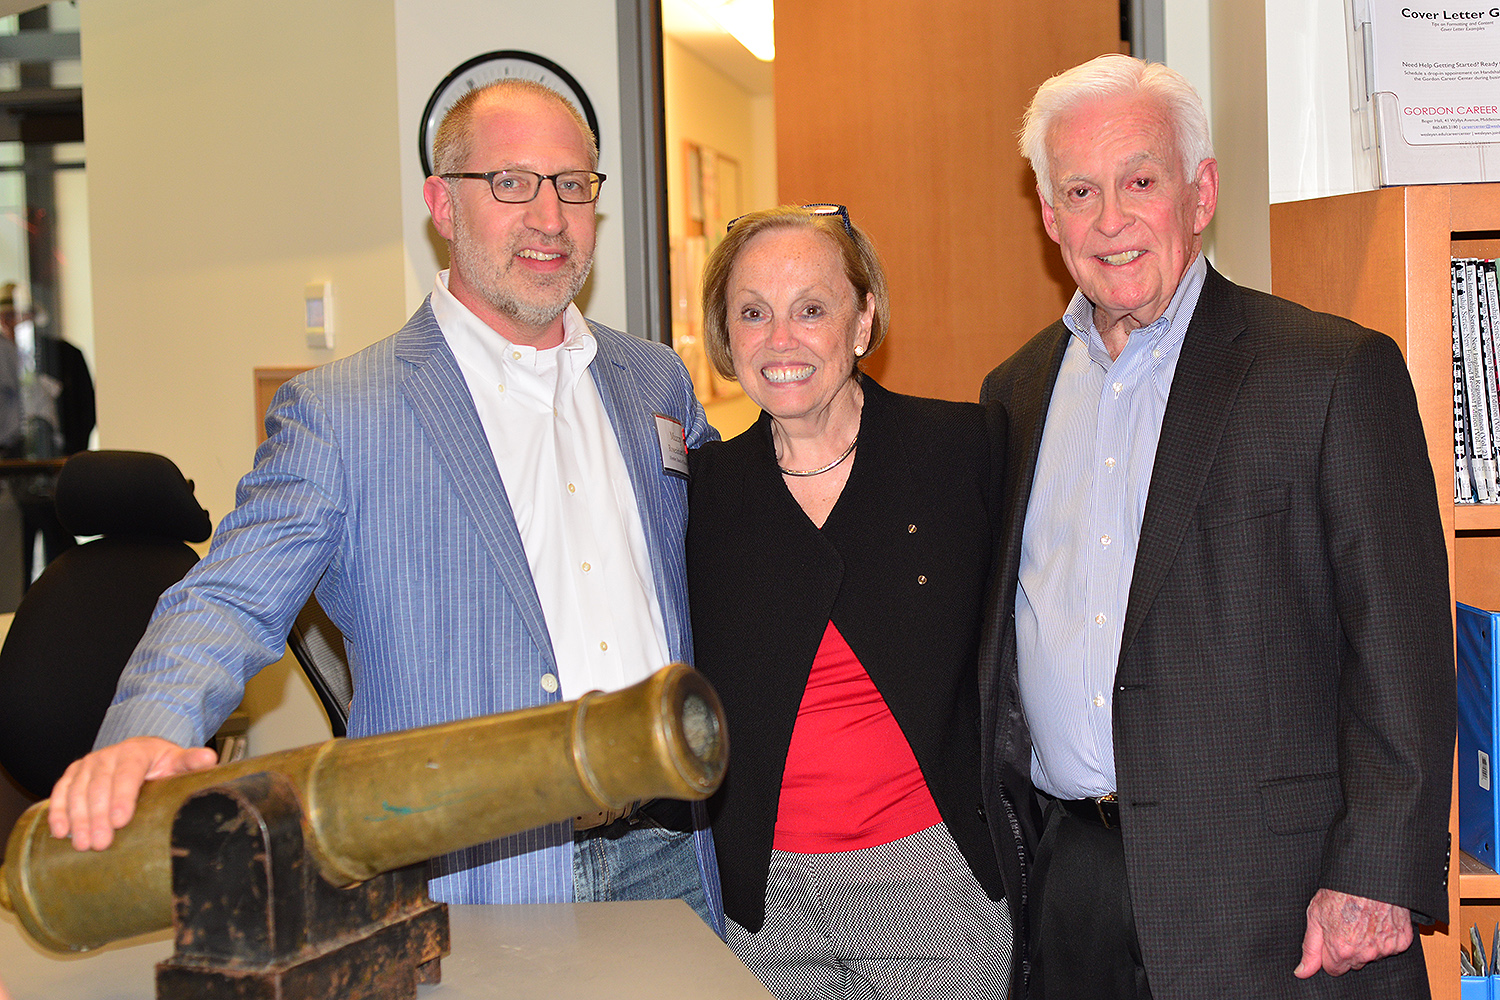 Muzzy Rosenblatt '87, Gina Driscoll and John Driscoll caught a glimpse of the historic Douglas Cannon, which made an appearance during Reunion & Commencement Weekend.